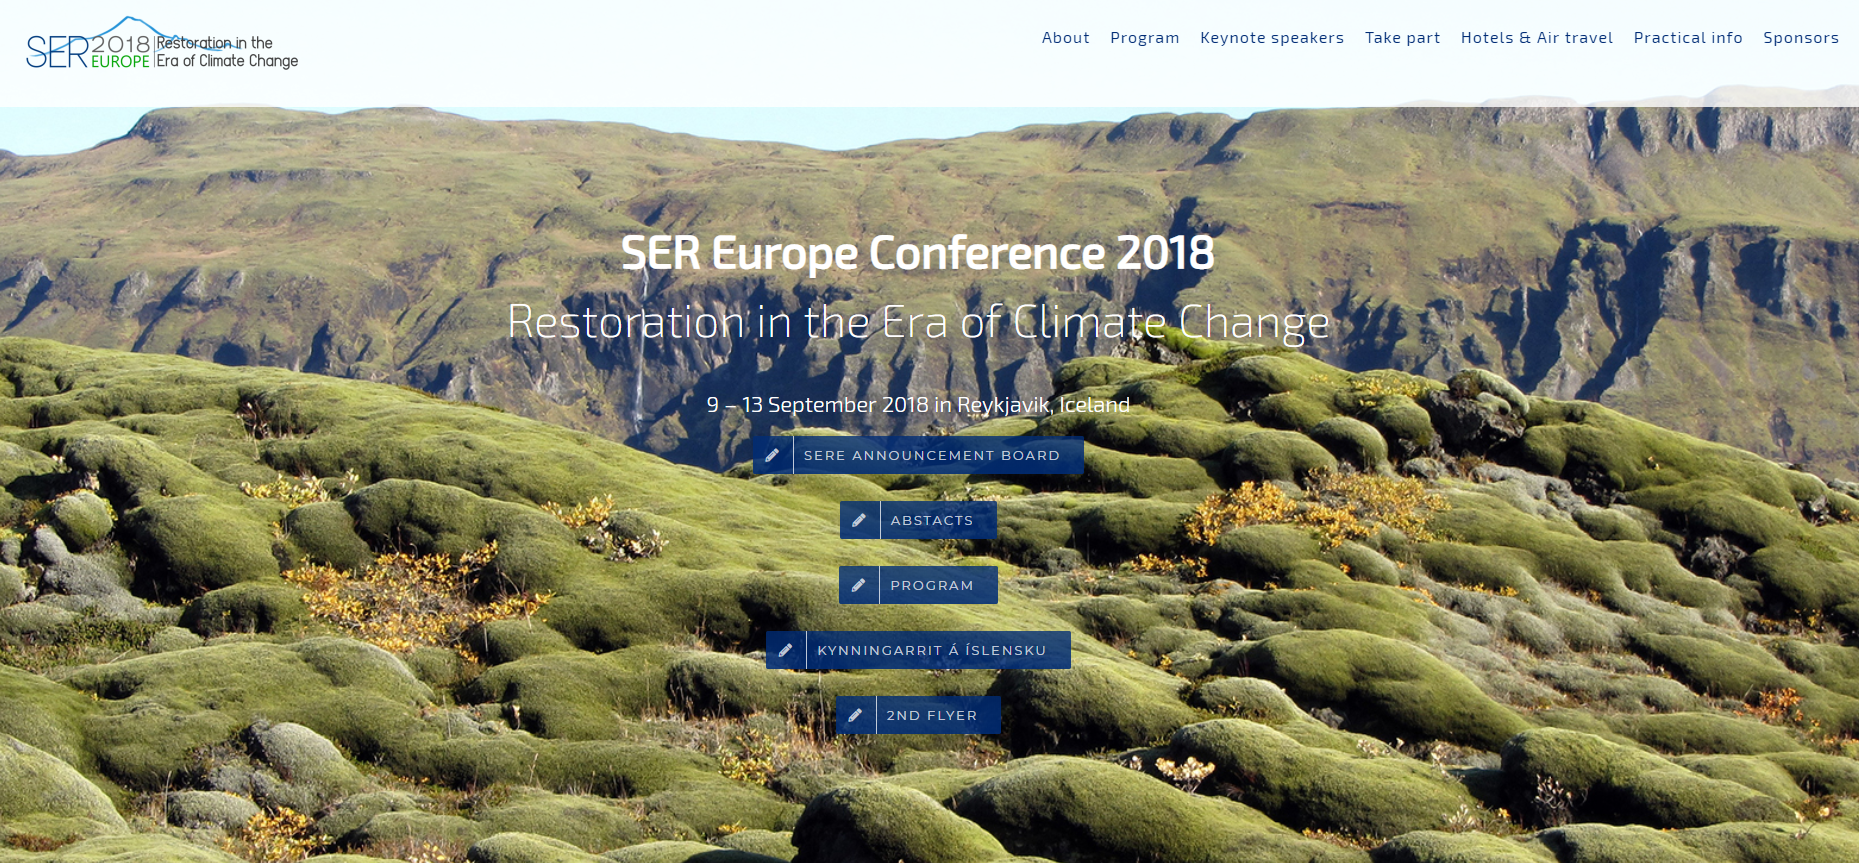 Presentación del proyecto LIFE Fluvial en el congreso «SER Europe Conference 2018 Restoration in the Era of Climate Change»